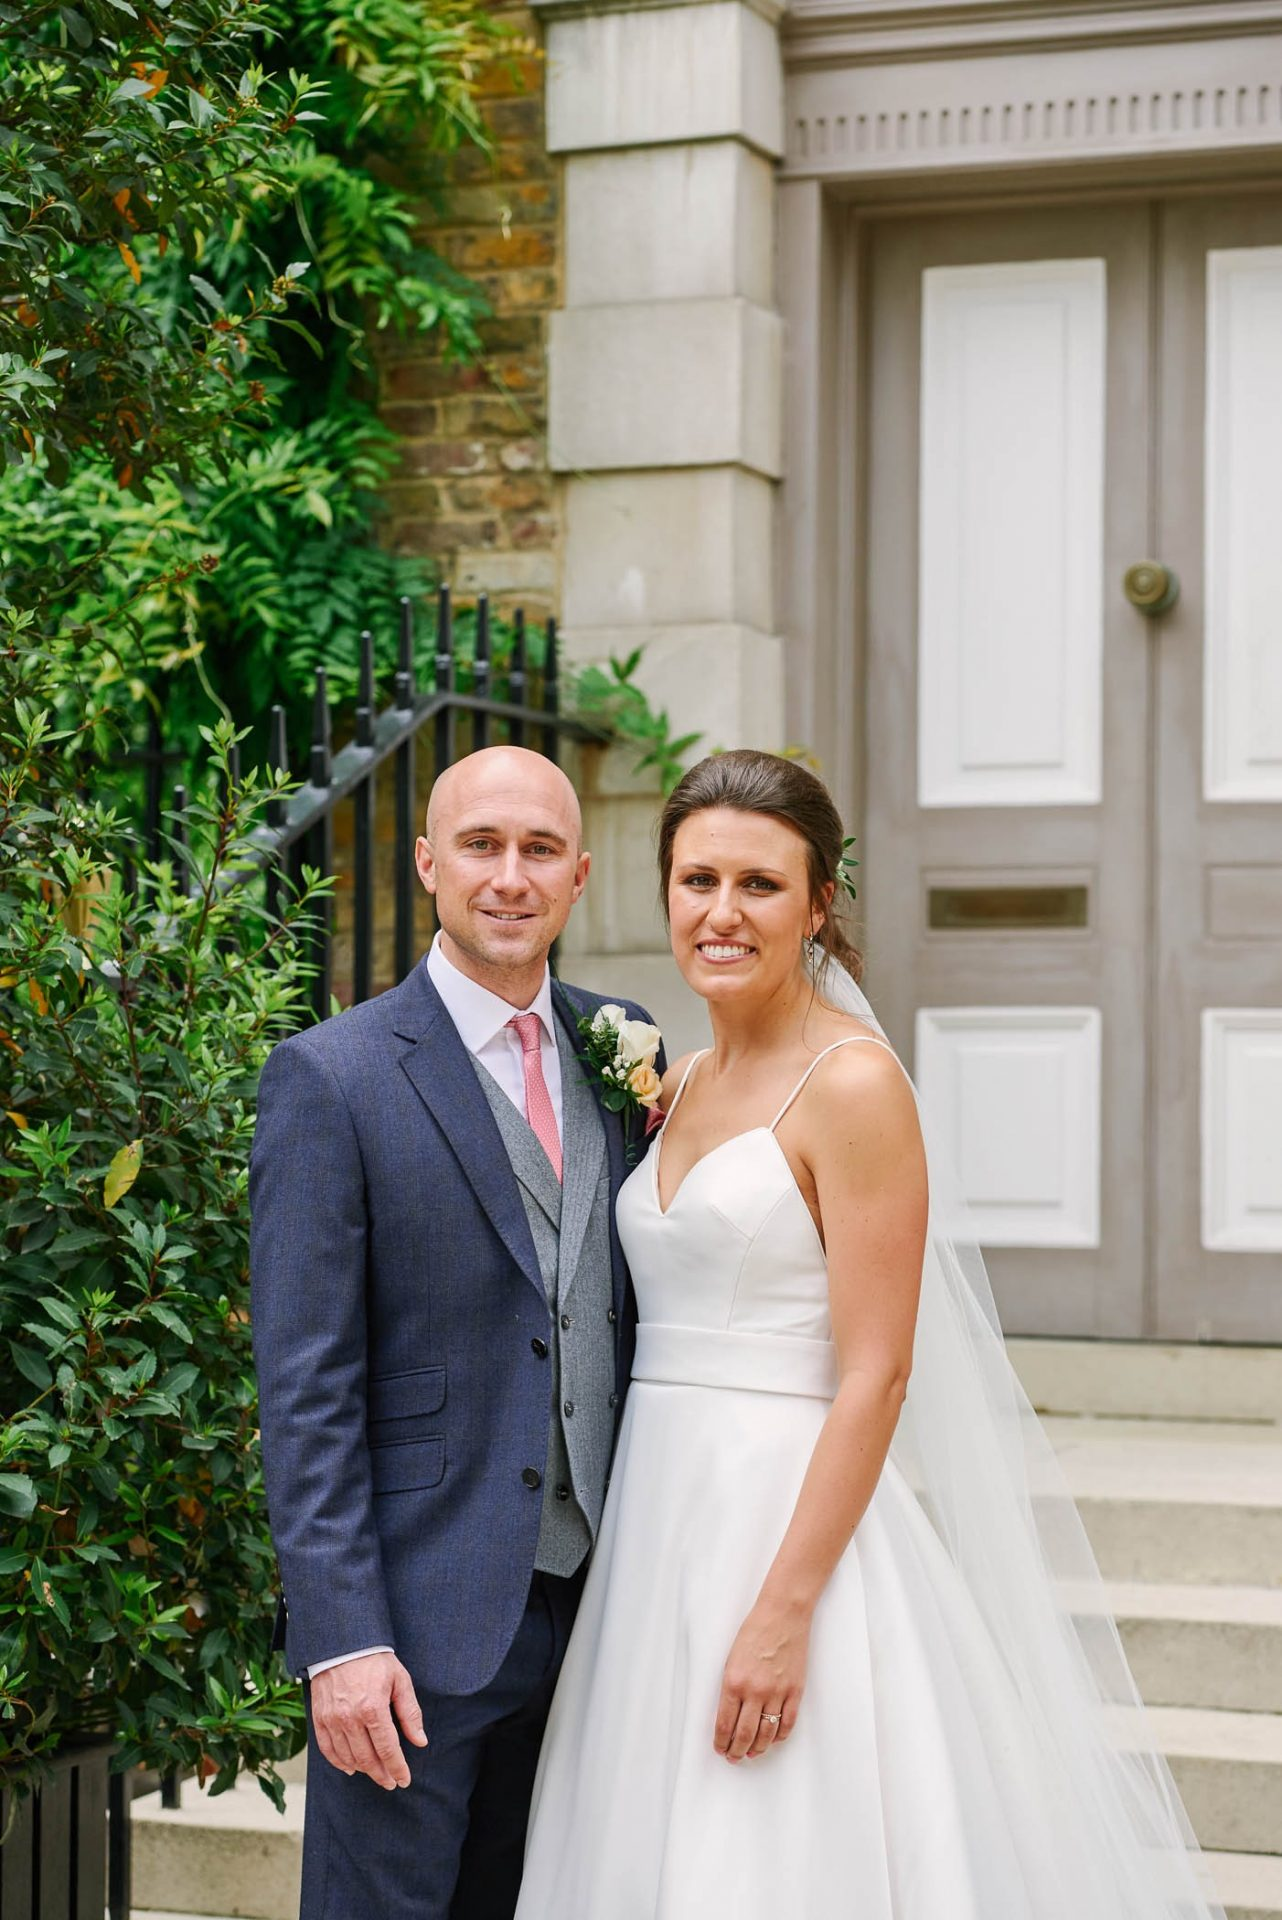 Bride and groom smiling in front of classic london doorway